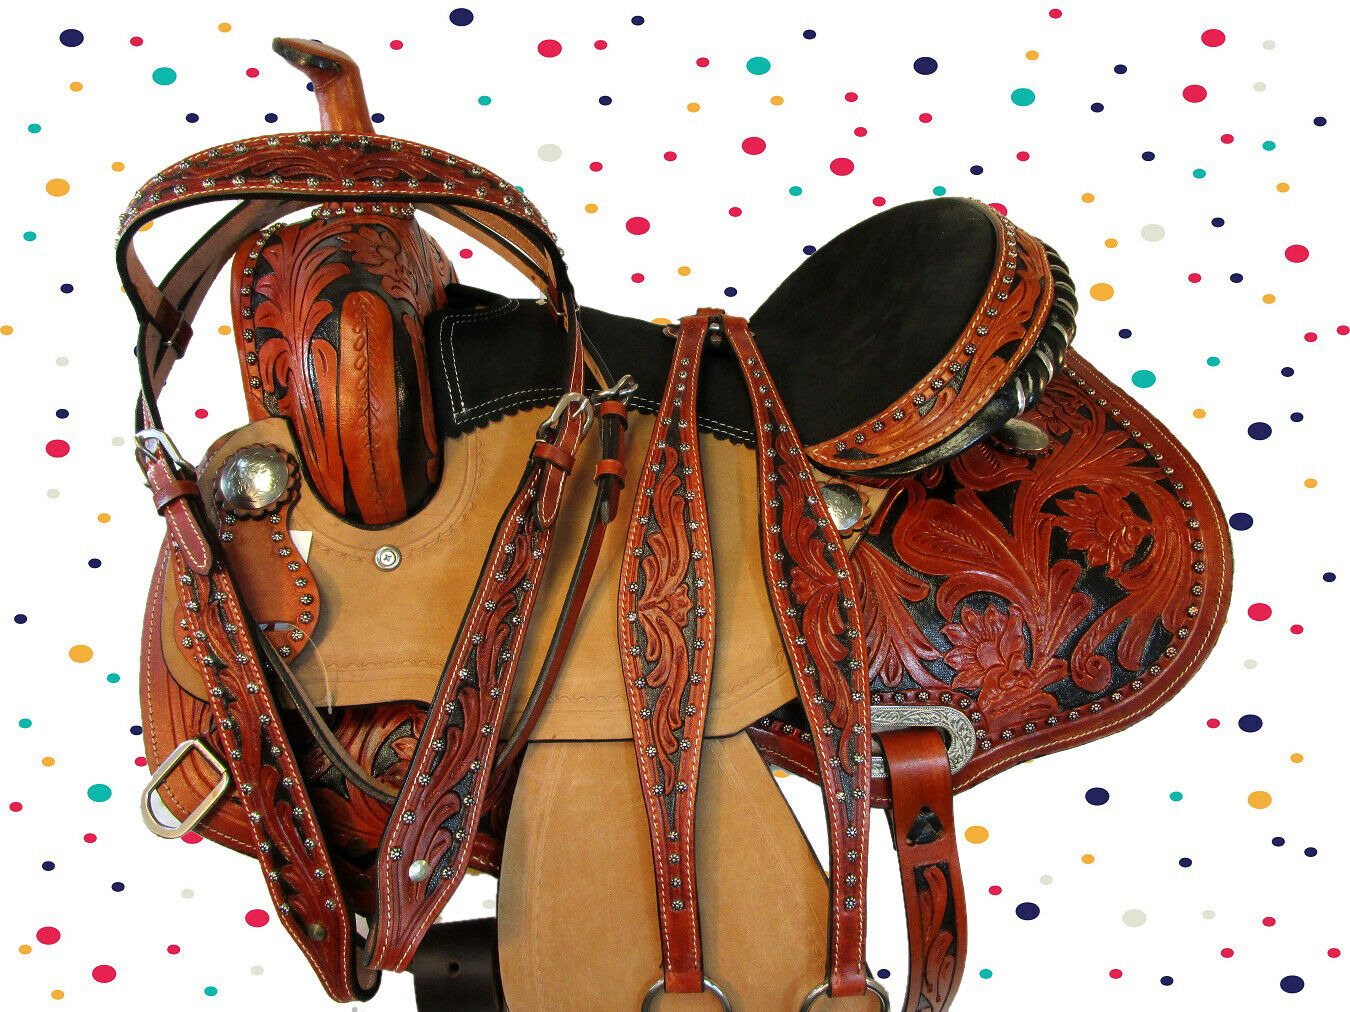 PREMIUM TOOLED PLEASURE TRAIL RODEO WESTERN SADDLE 15 16 BARREL TRAIL SHOW SET